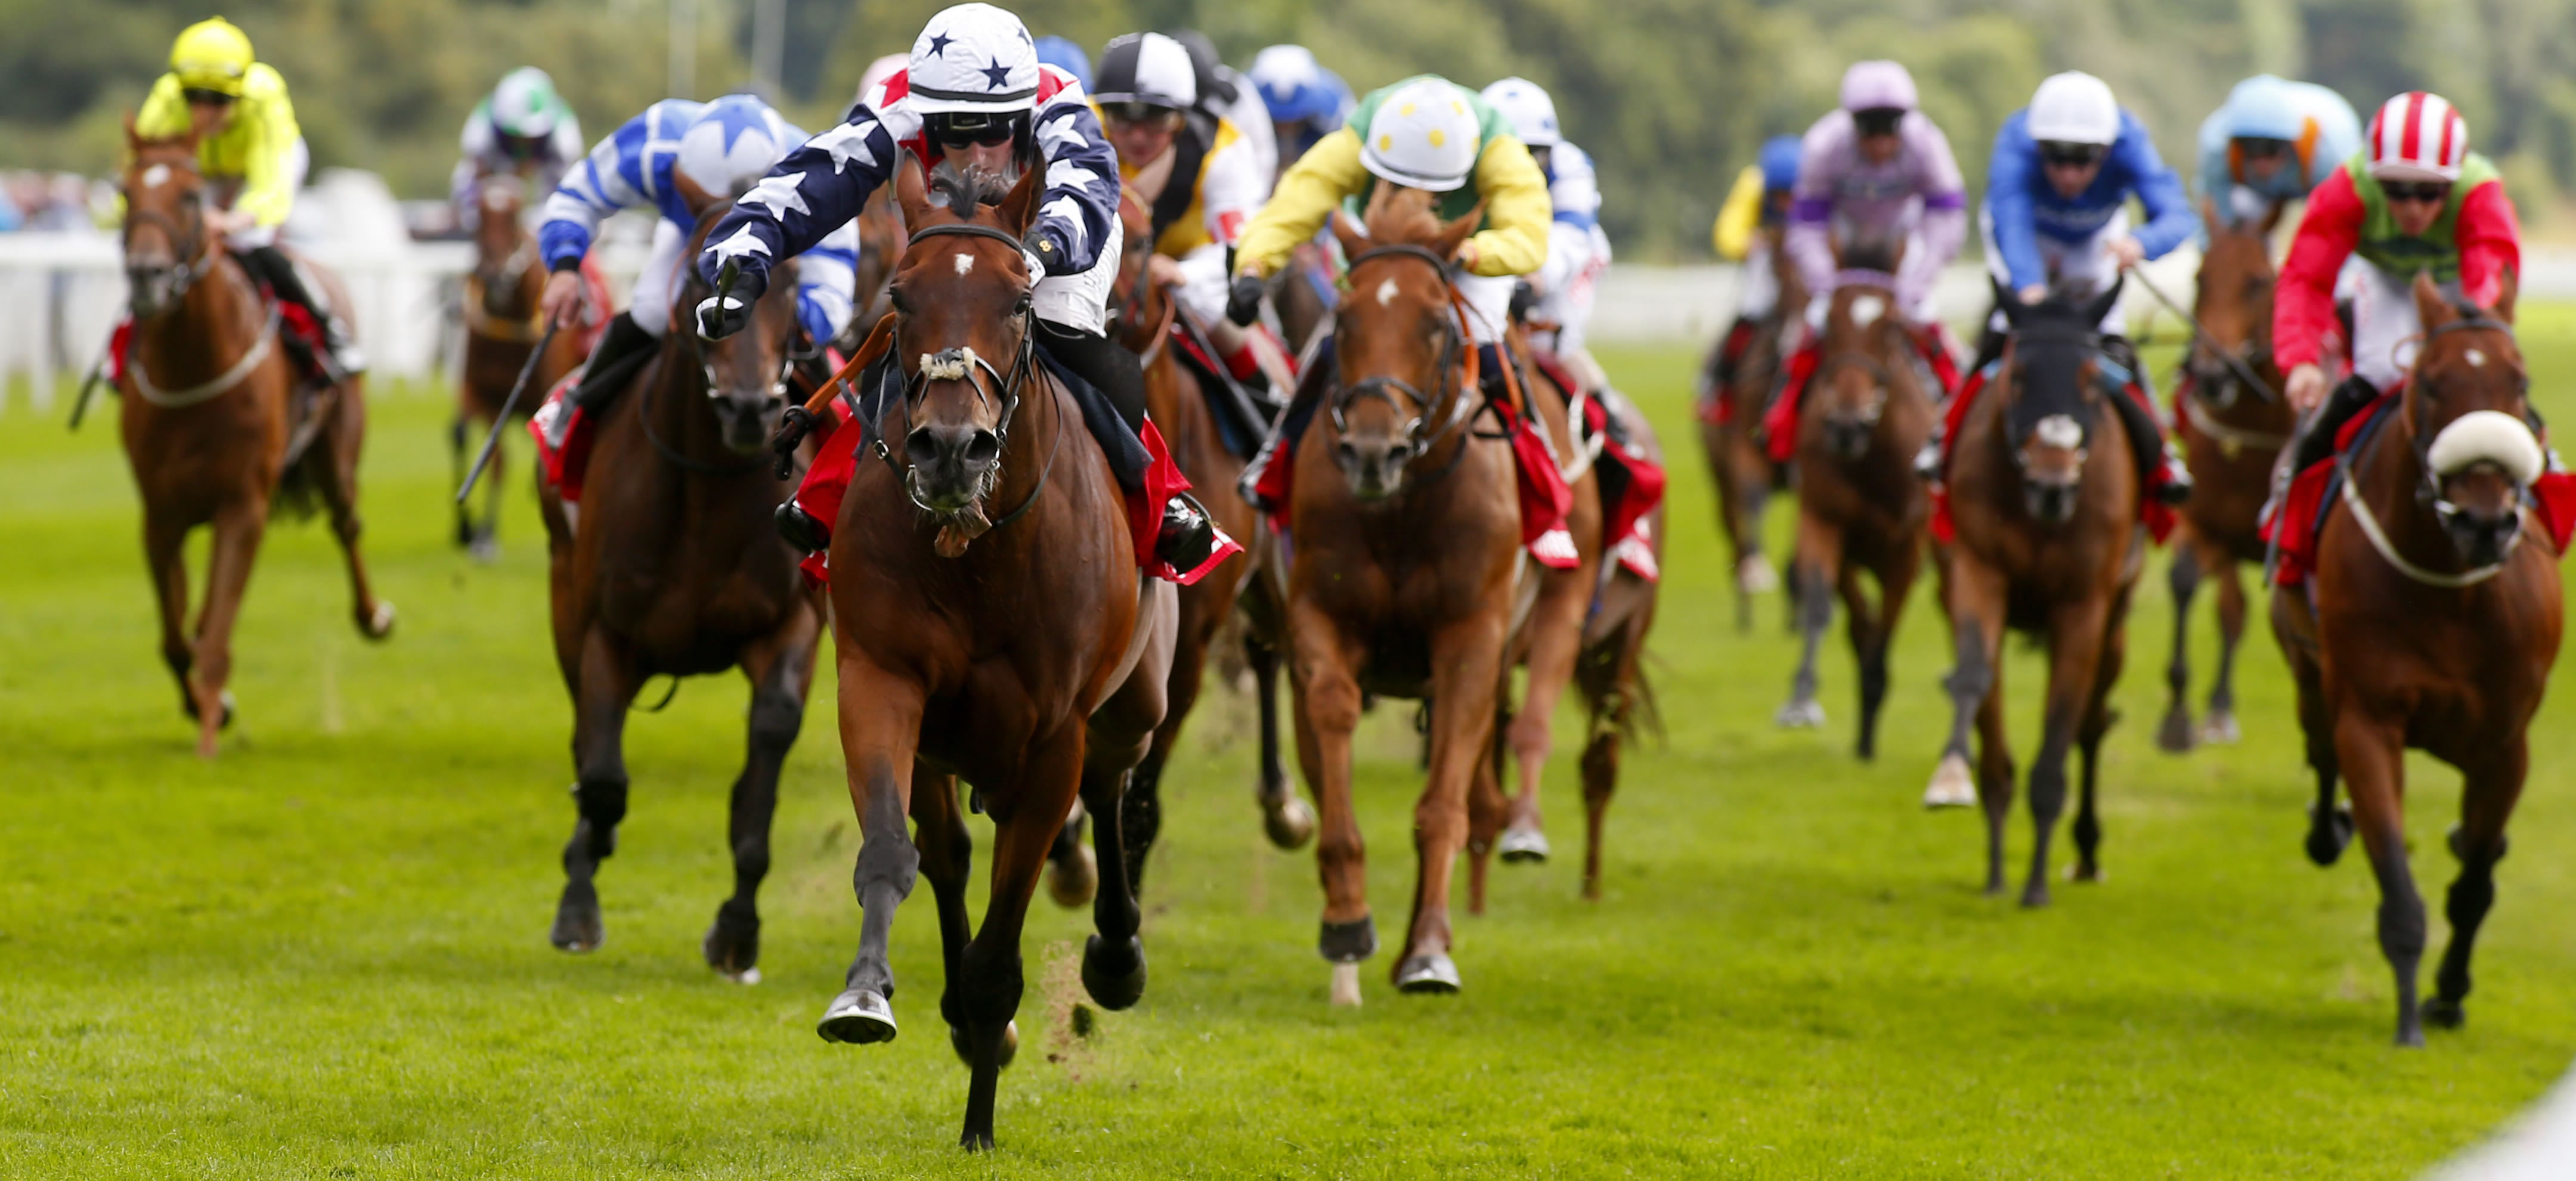 Elimination from big handicaps - The British Horseracing Authority